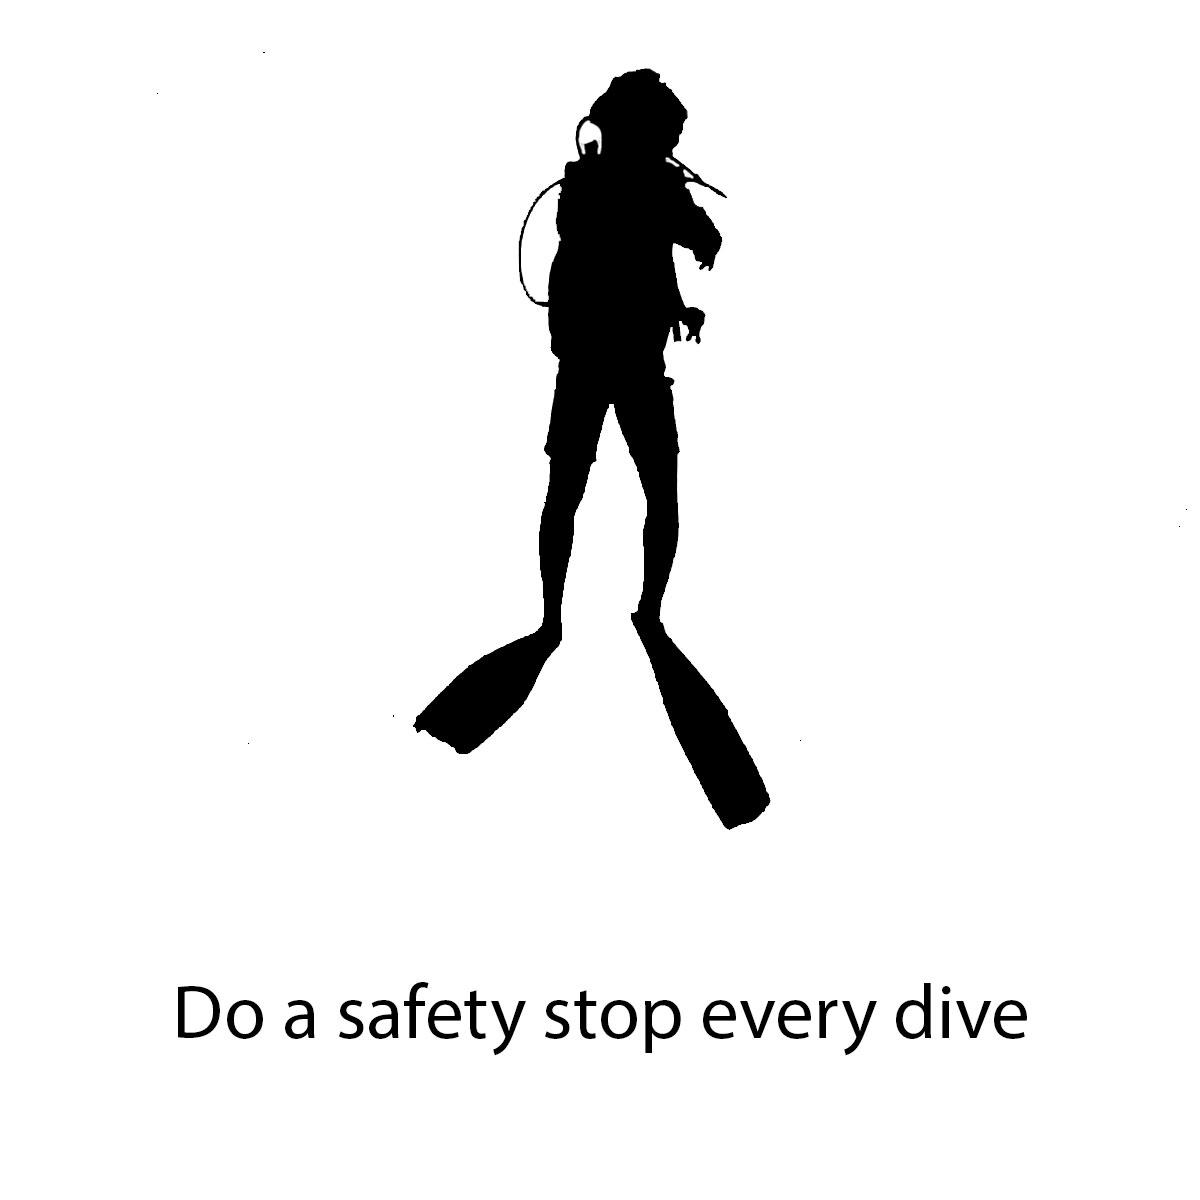 Do-a-safety-stop-every-dive.jpg